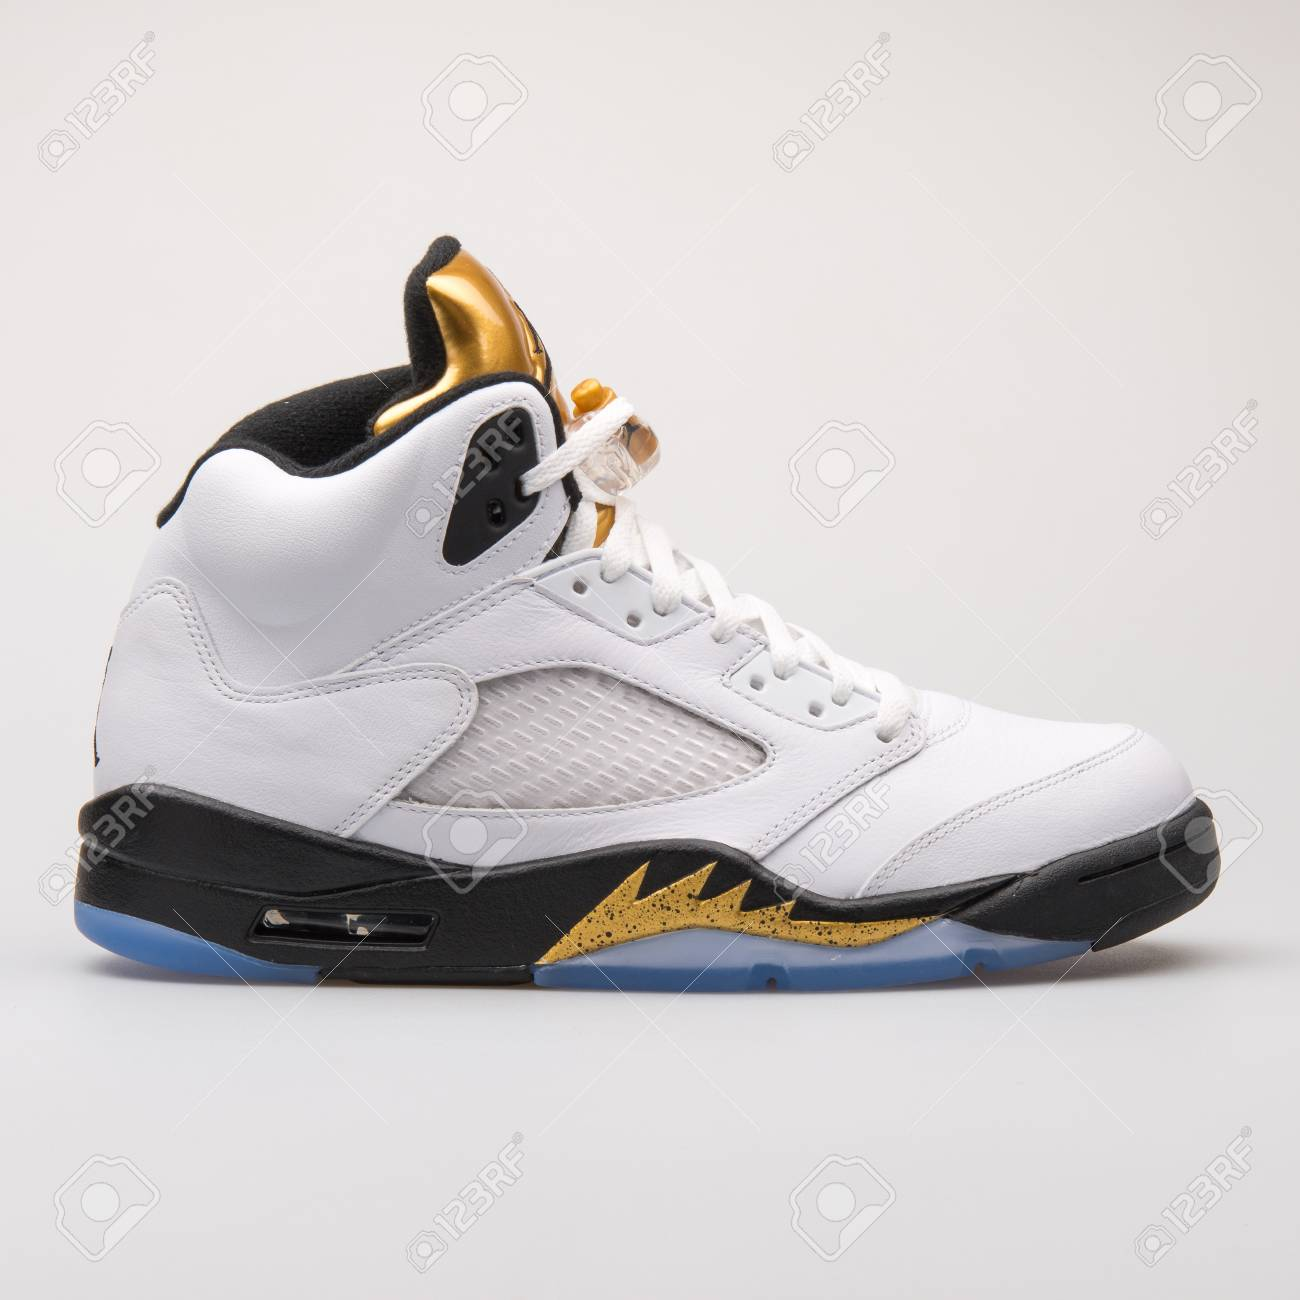 newest 93f00 0a0bf VIENNA, AUSTRIA - JUNE 14, 2017: Nike Air Jordan 5 Retro white,..